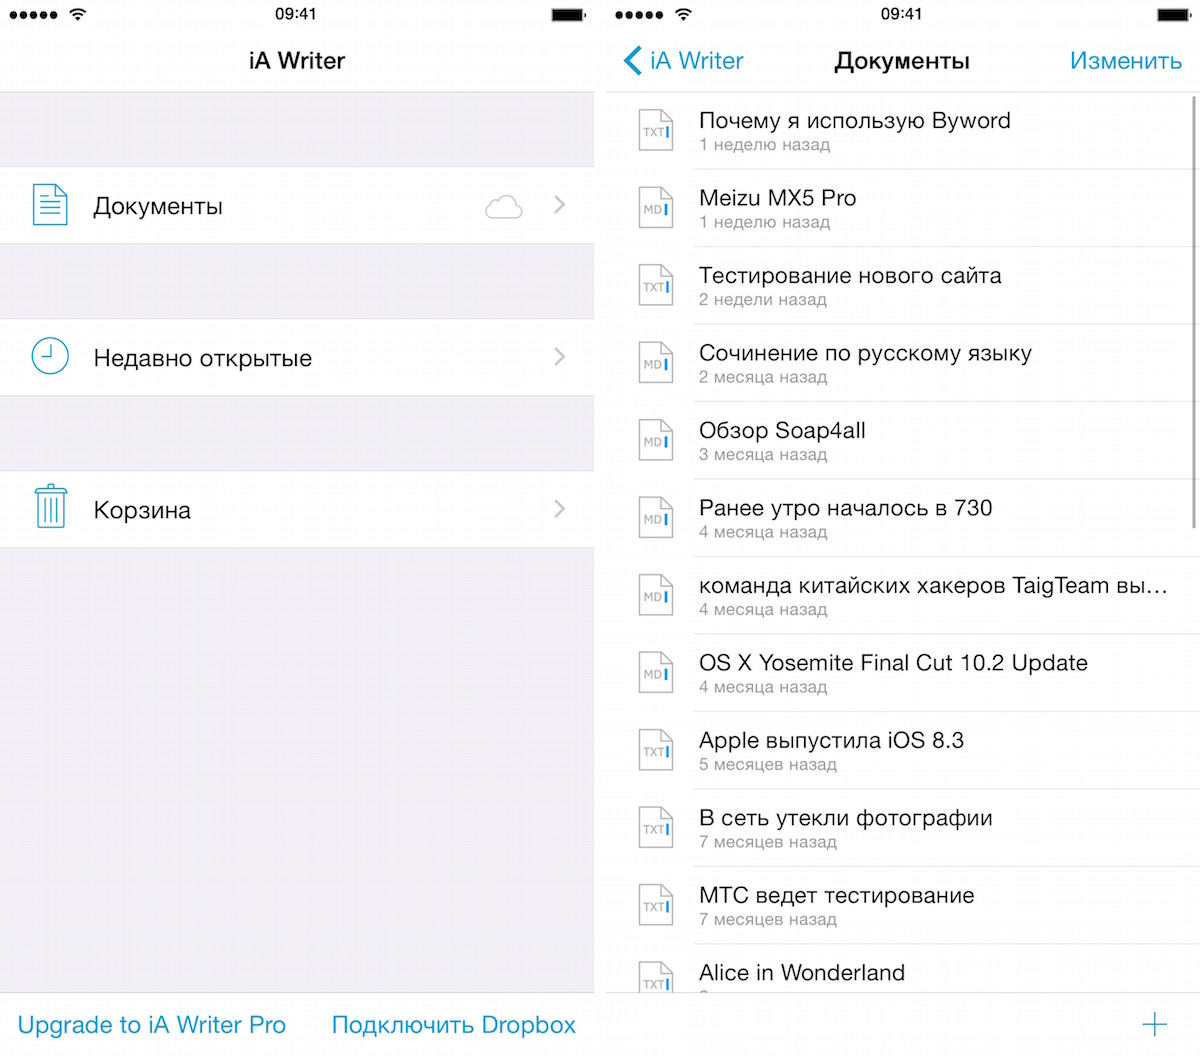 Ulysses iA Wrier Byword vs. Russian iOS iPhone iPad Mac OS X review 4